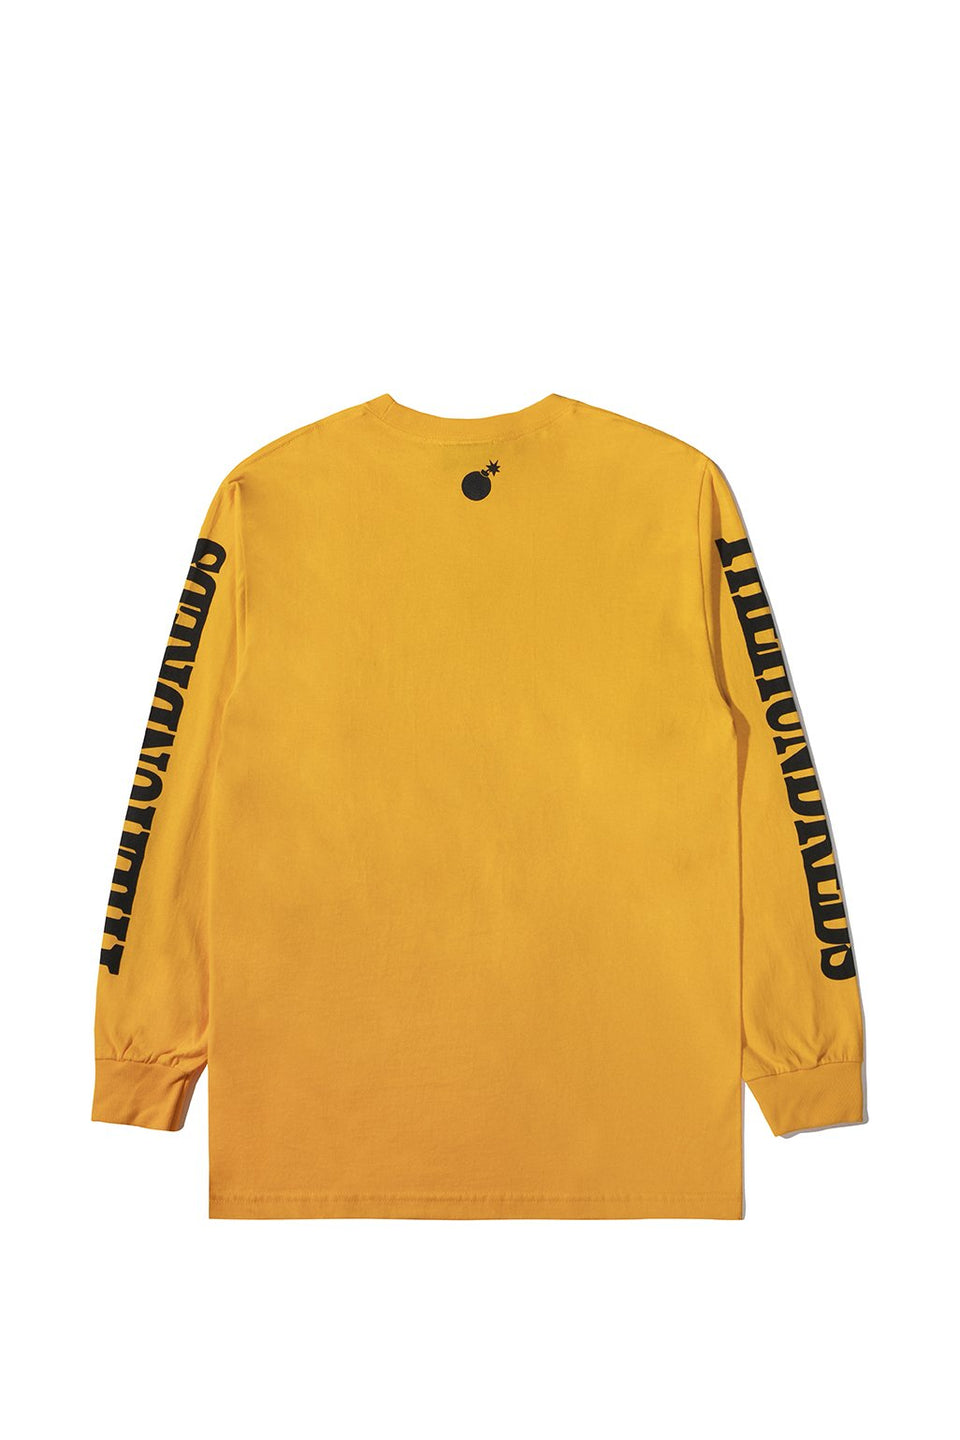 Weapons L/S Shirt